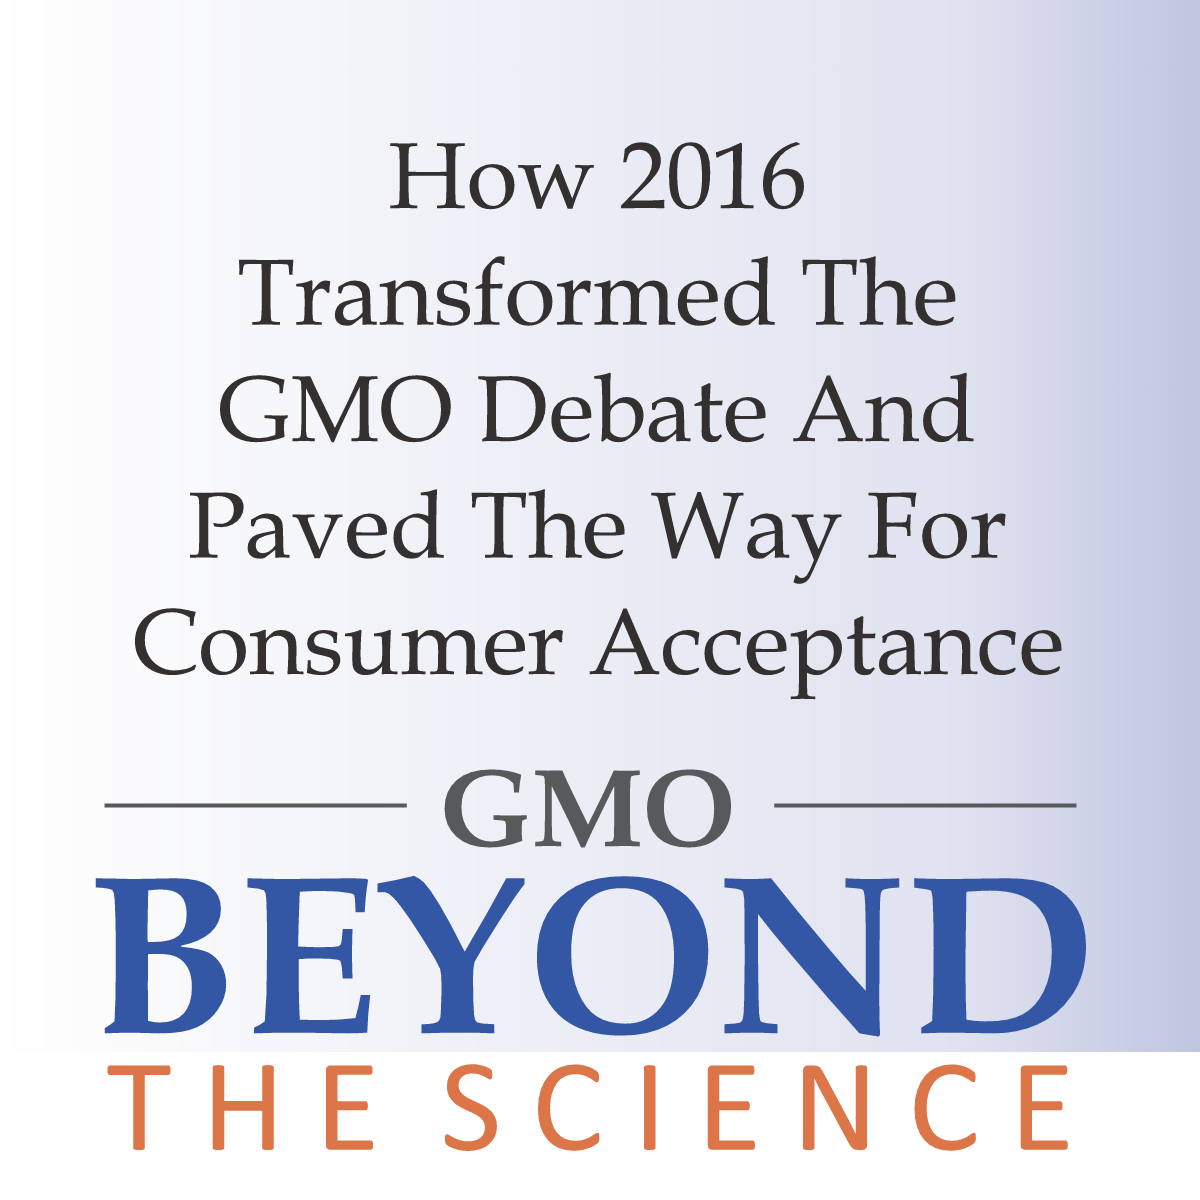 How 2016 Transformed The GMO Debate And Paved The Way For Consumer Acceptance